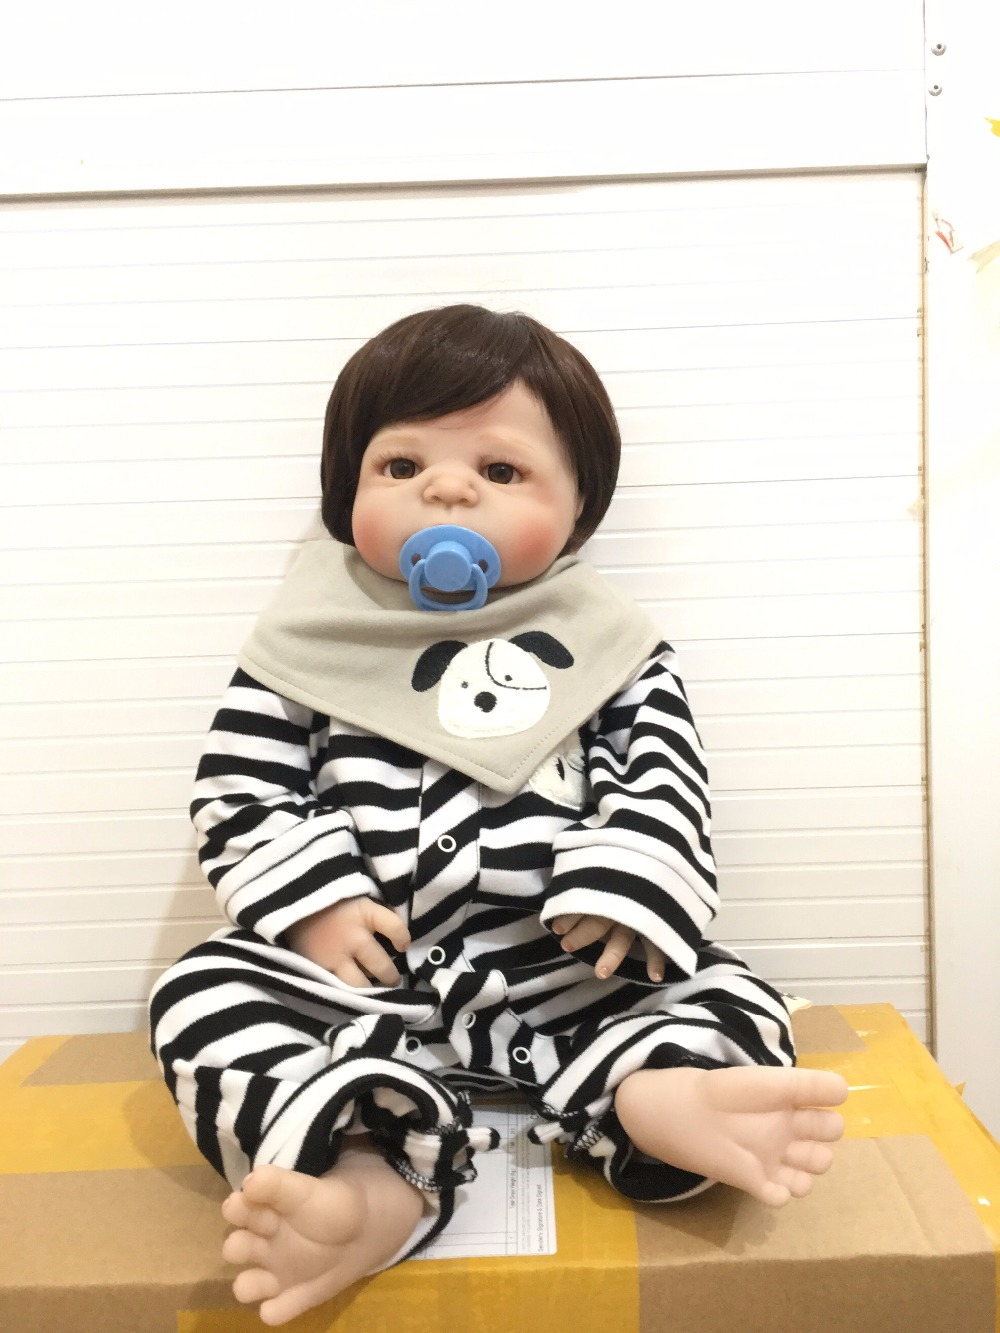 55cm Full Body Silicone Reborn Baby Toy Boy Waterproof Doll 22 Realistic Newborn Baby Boy Lovely Doll Toy for Birthday Gift pursue 22 56 cm big smile face reborn boy toddler baby doll cotton body vinyl silicone baby boy doll for children birthday gift